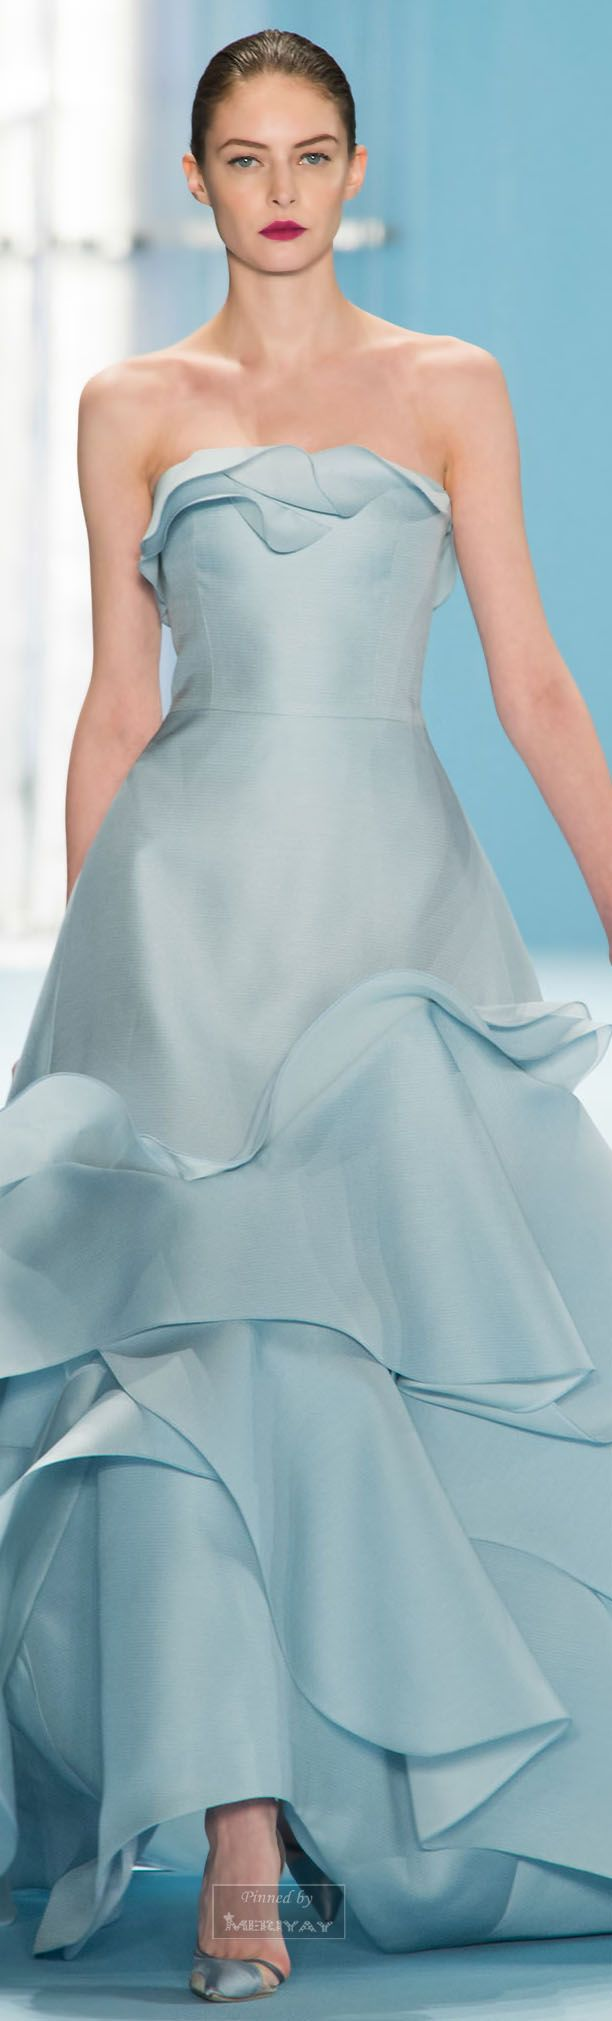 Carolina Herrera ~ Fall Strapless Evening Gown, Pale Blue,2015.